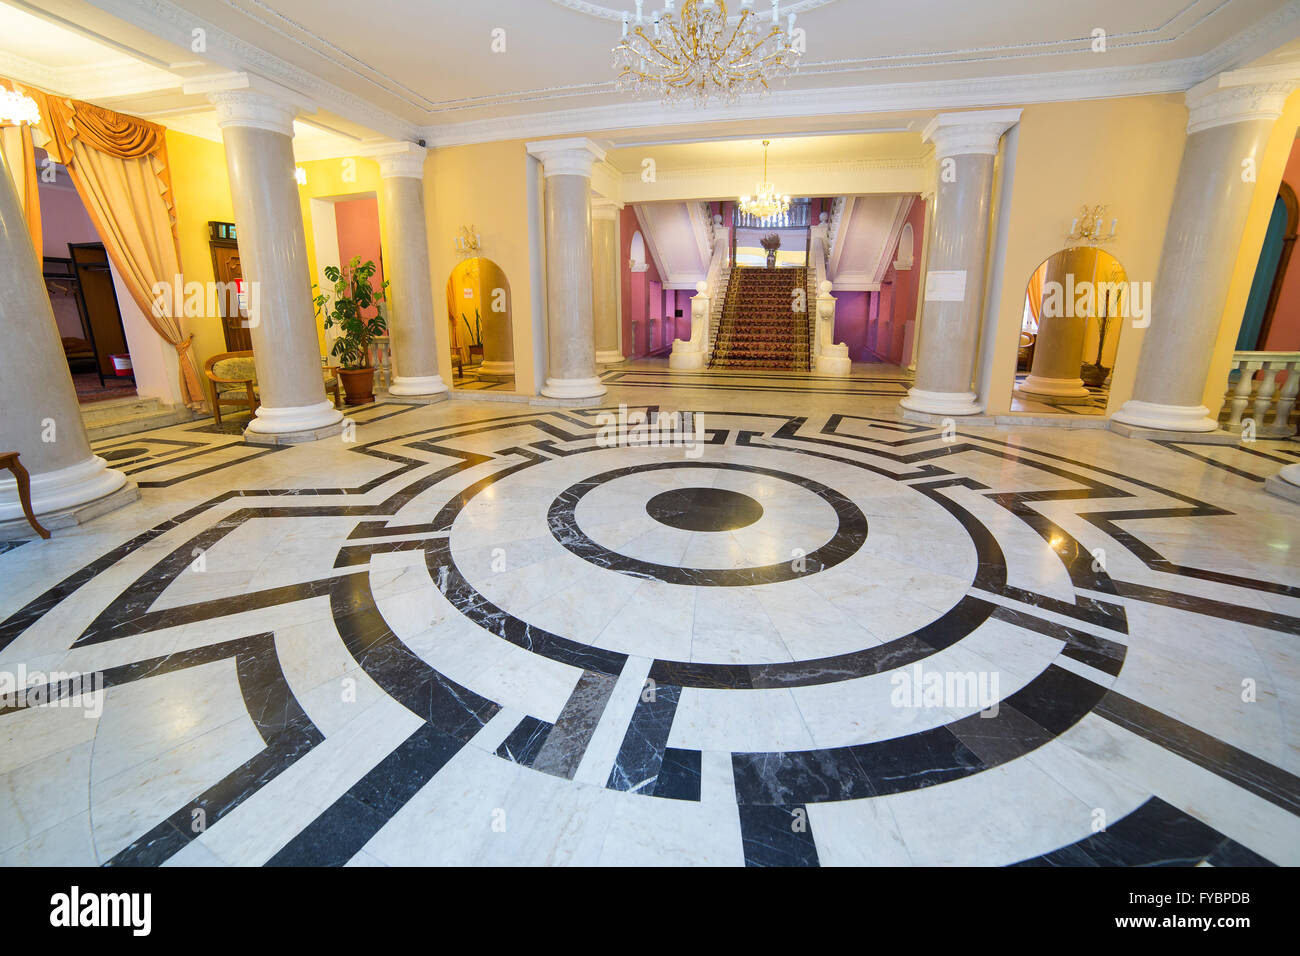 Luxury Classic Round Hall With Columns Marble Staircase